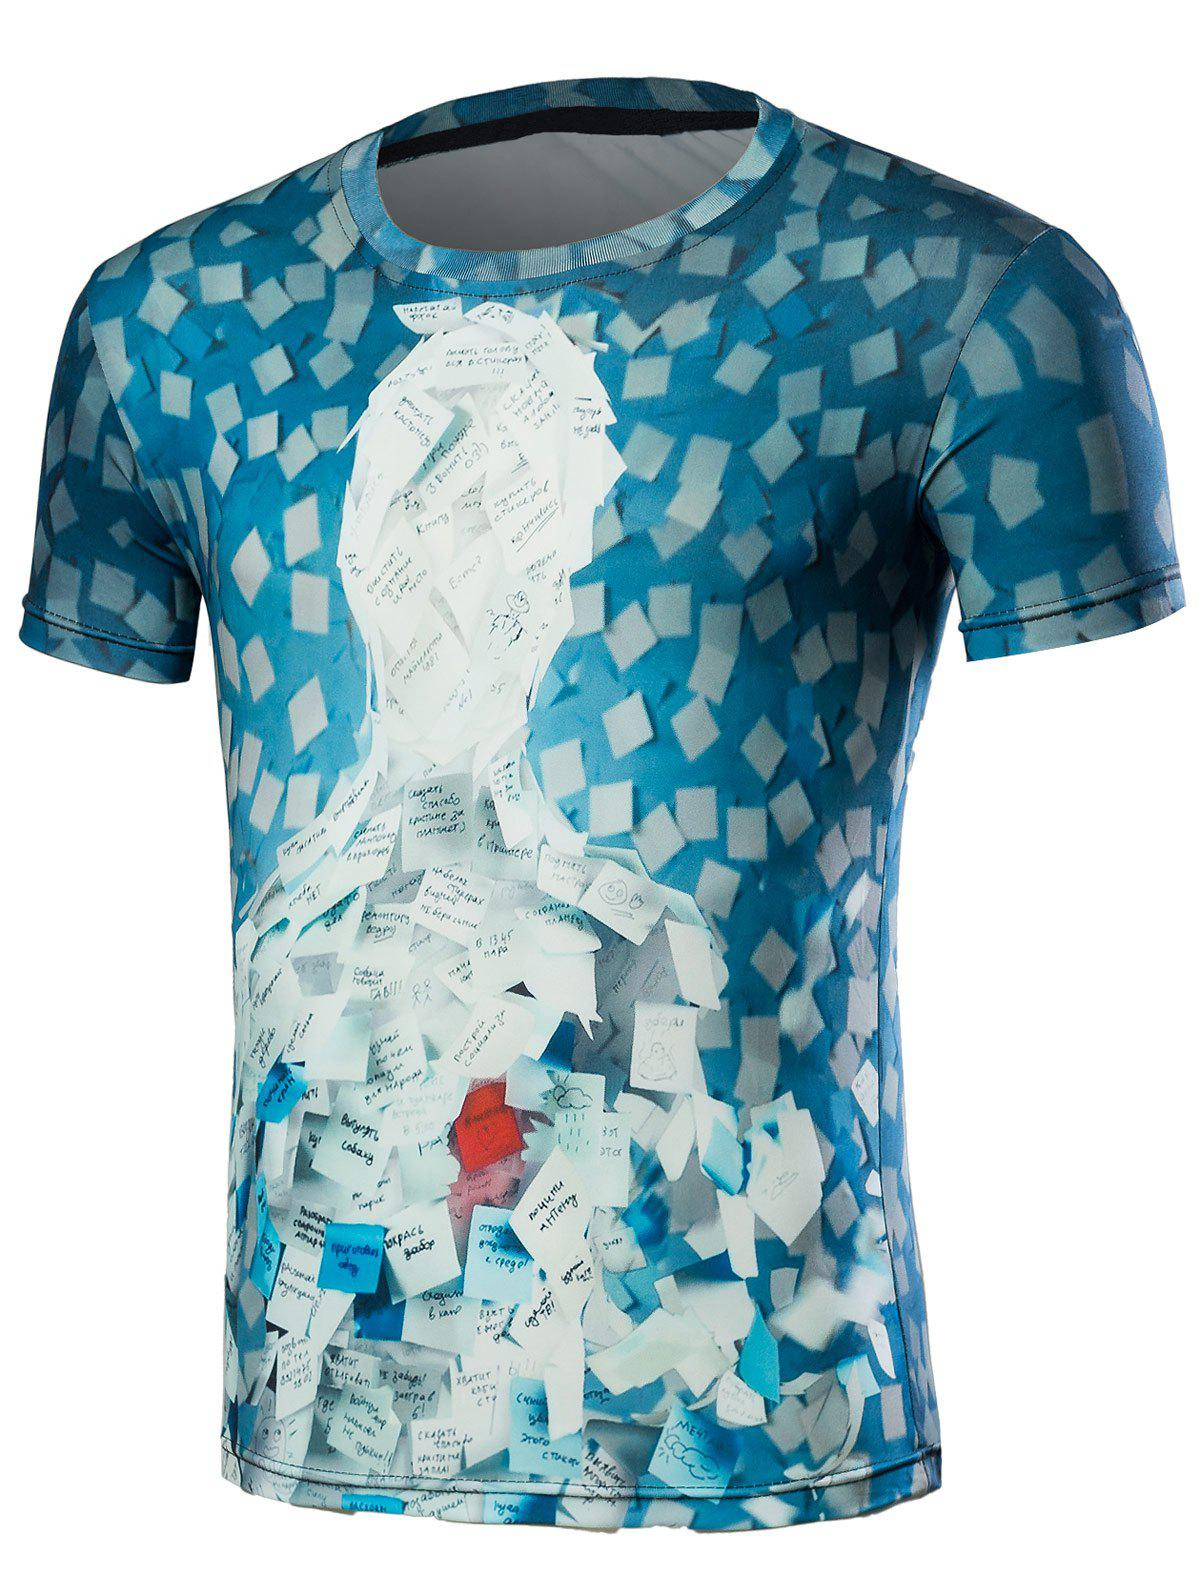 3D Notes Paste Print Short Sleeve T-Shirt - BLUE S